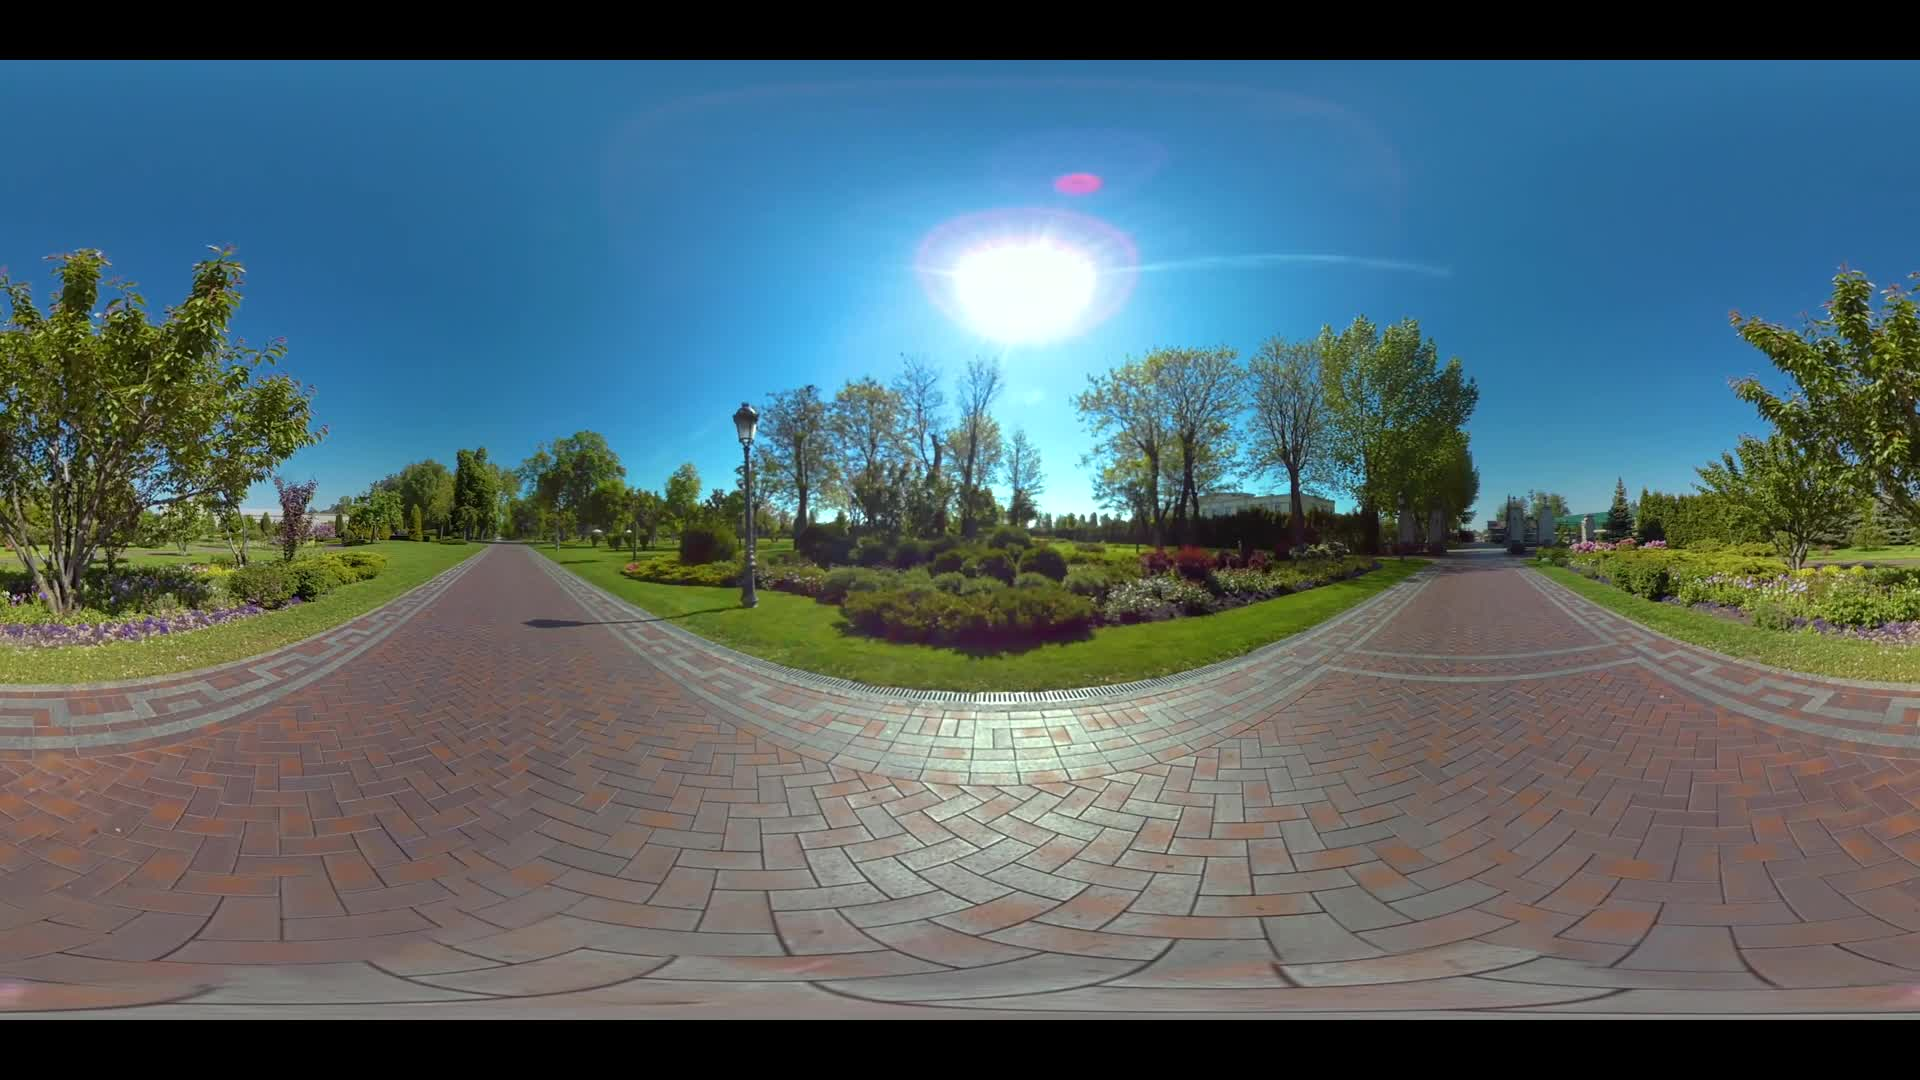 Panoramic landscape in summer park. Nature in summer park 360 panorama. Cobbled paths in city park 360 degrees view. Sun shining in summer park